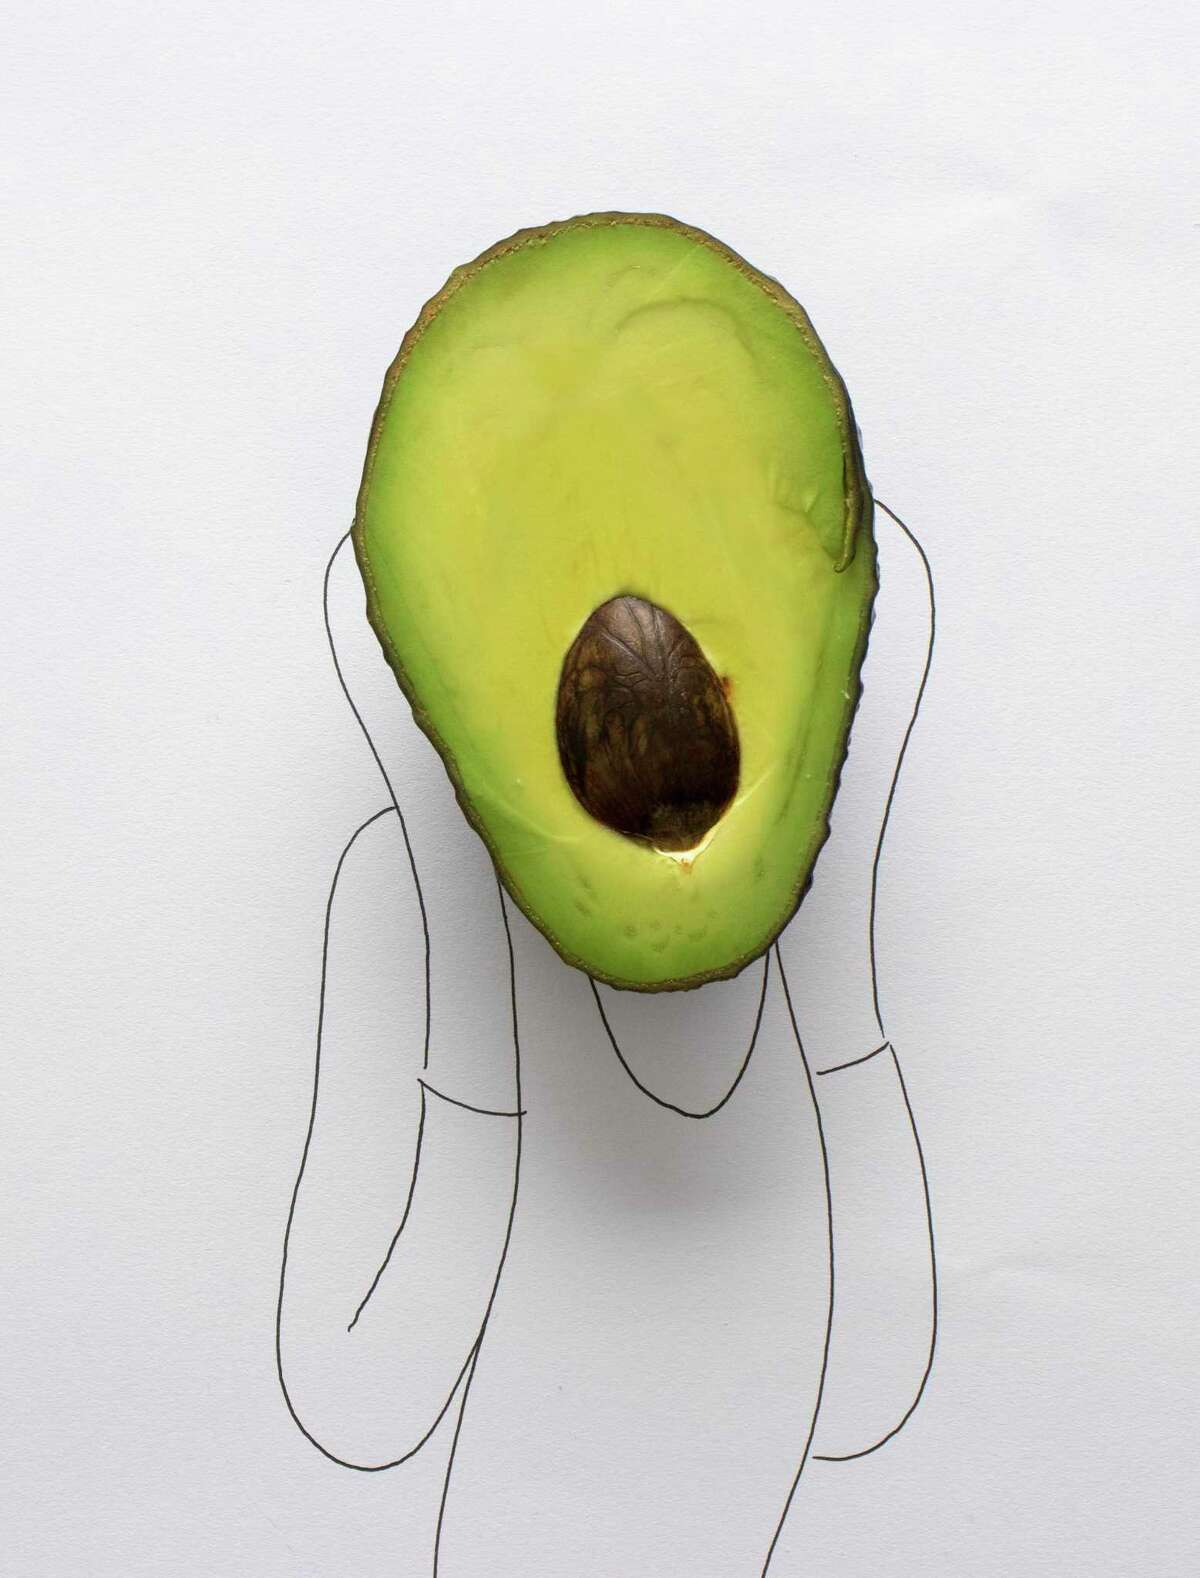 The ripe-not-ripe avocado struggle is real, y'all.